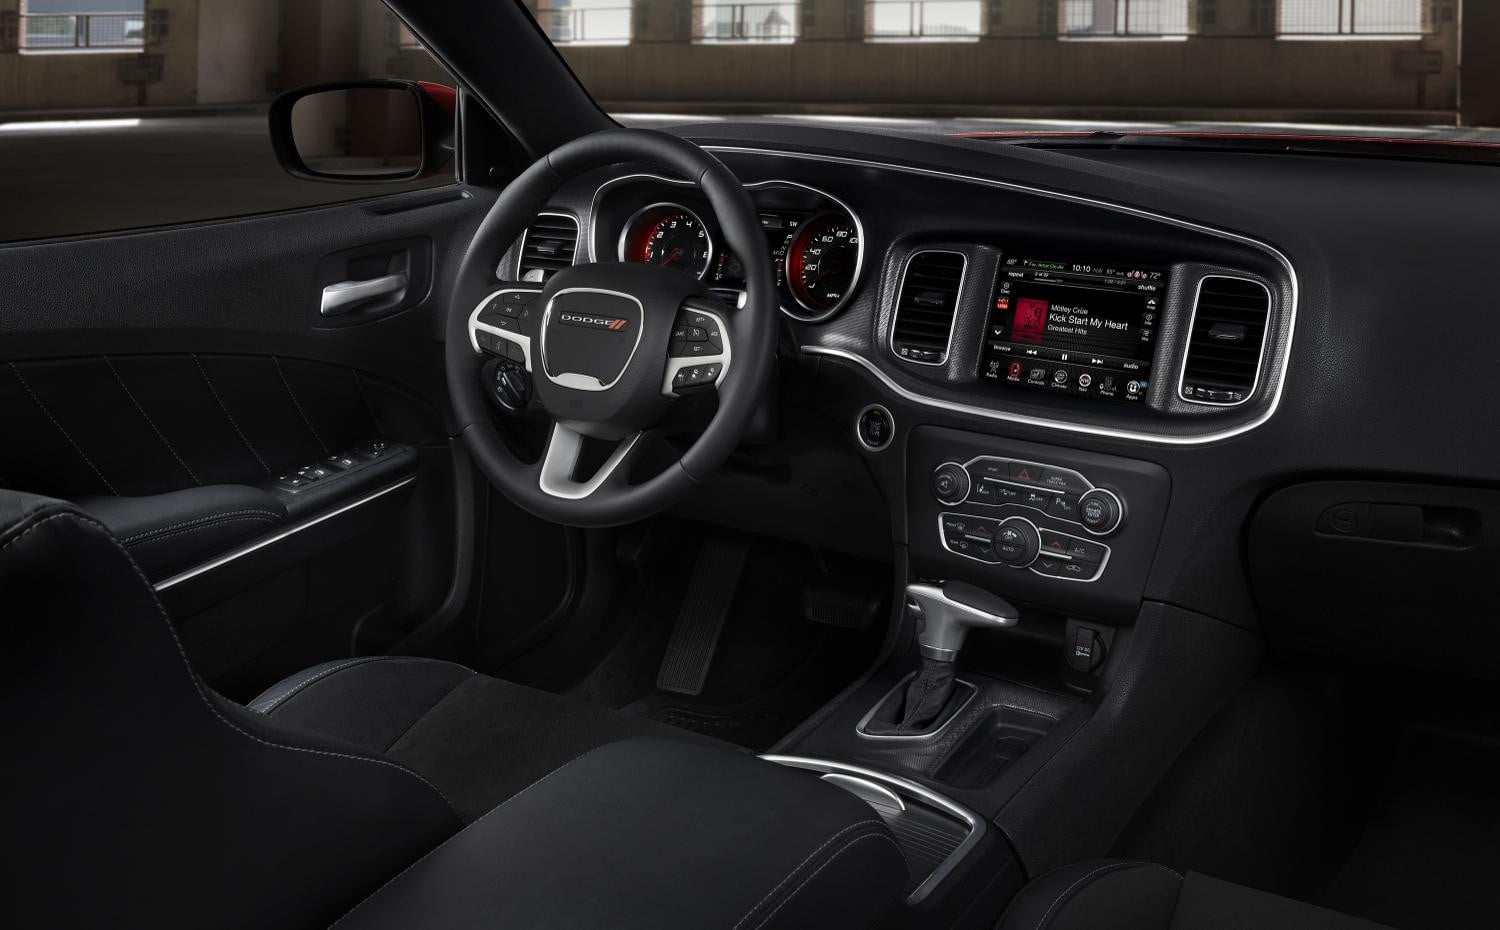 dodge charger vs interior - Dodge Charger 2014 Interior